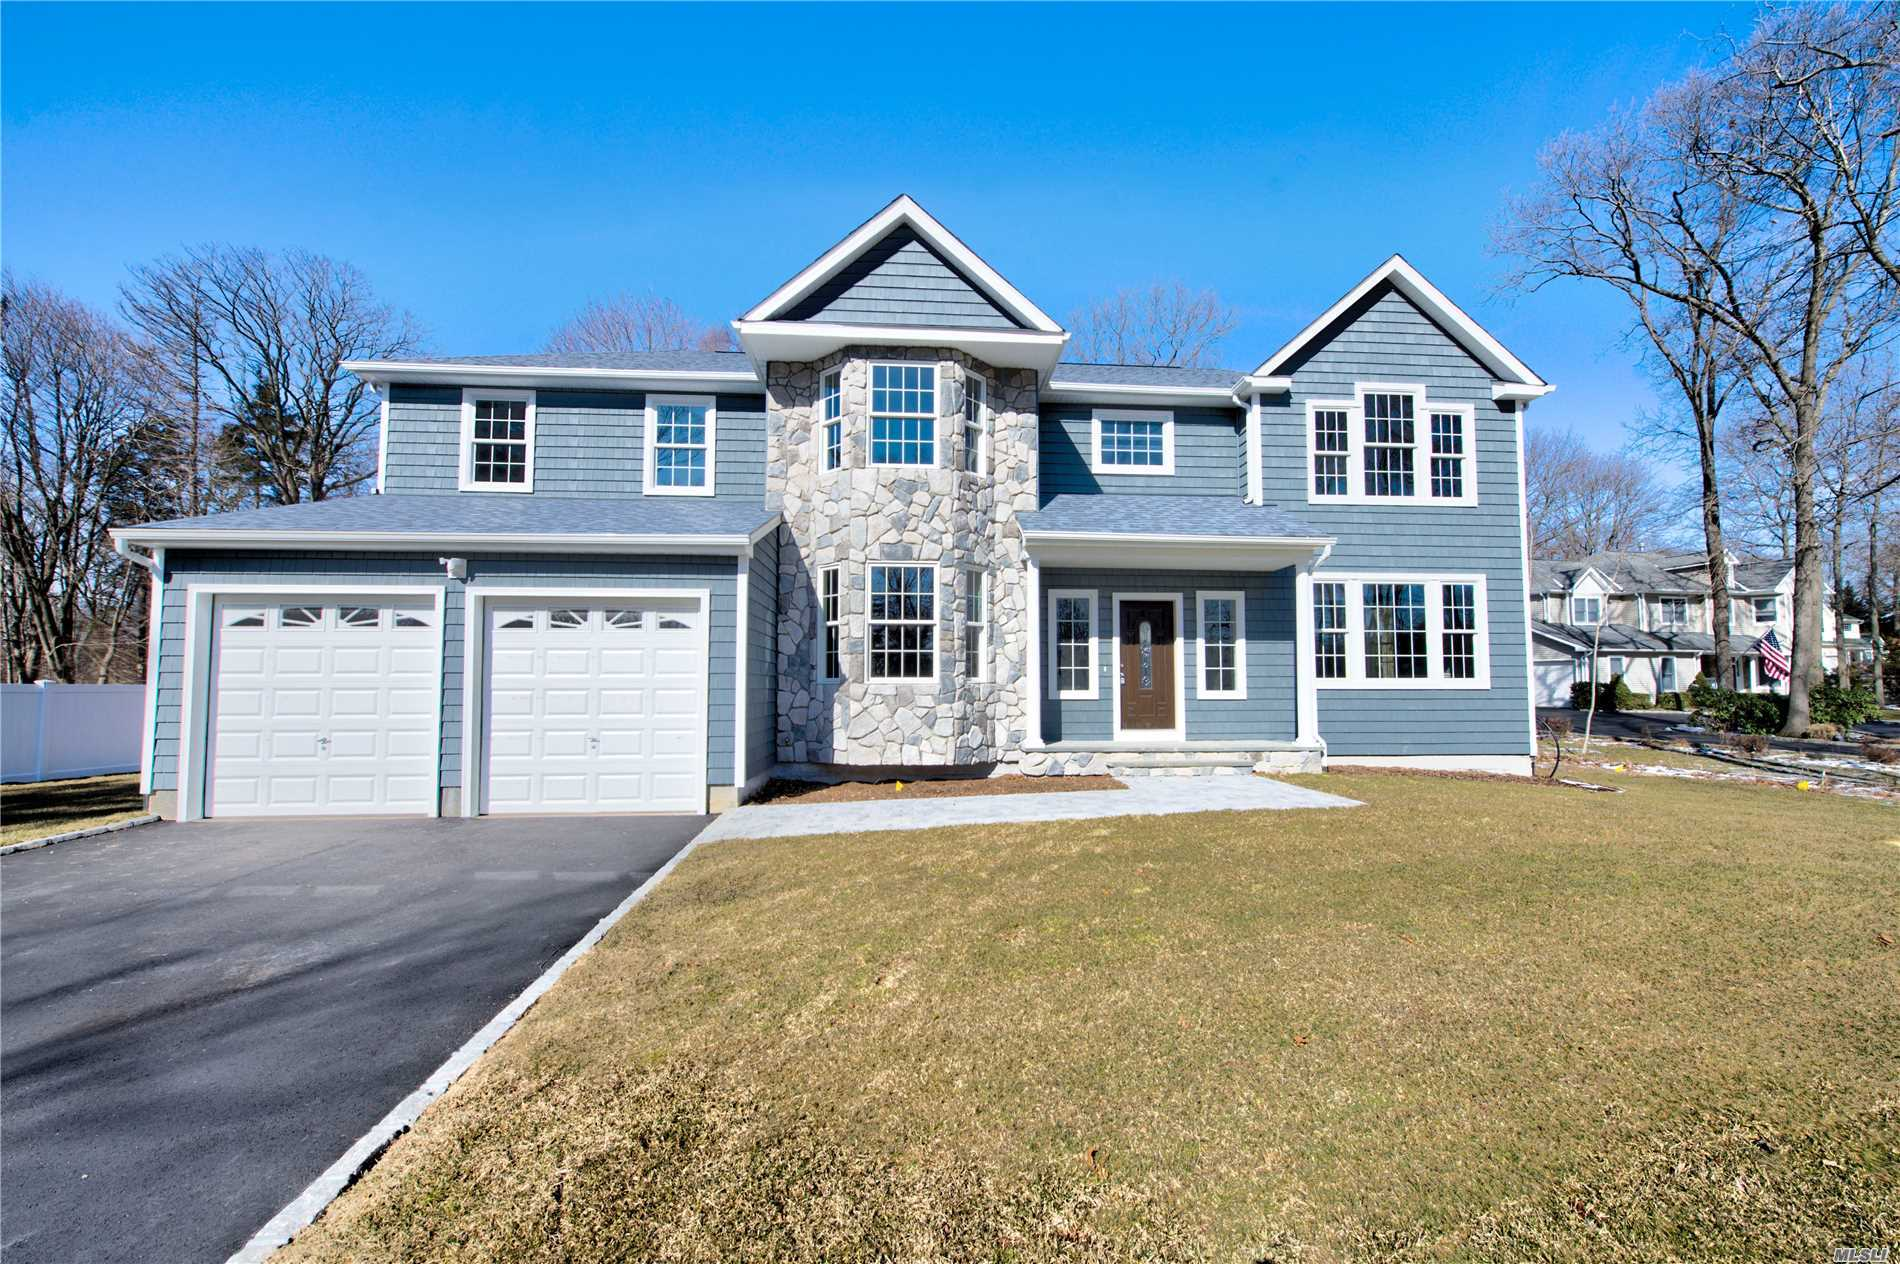 Builder Outdid Himself with Extras! Brand New 3464 Sqft Colonial With 5 Bedrooms, 3.5 Bathrooms, Attached 2 Car Garage, Vaulted Ceilings, And A 9 Foot Basement With Outside Entrance And Low Line Septic System. Den, Lr, Formal Dr, Granite Designer Eik With Stainless Steel Appliances, Wood Floors, 200 Amp, 2 Zone Cac, And More!